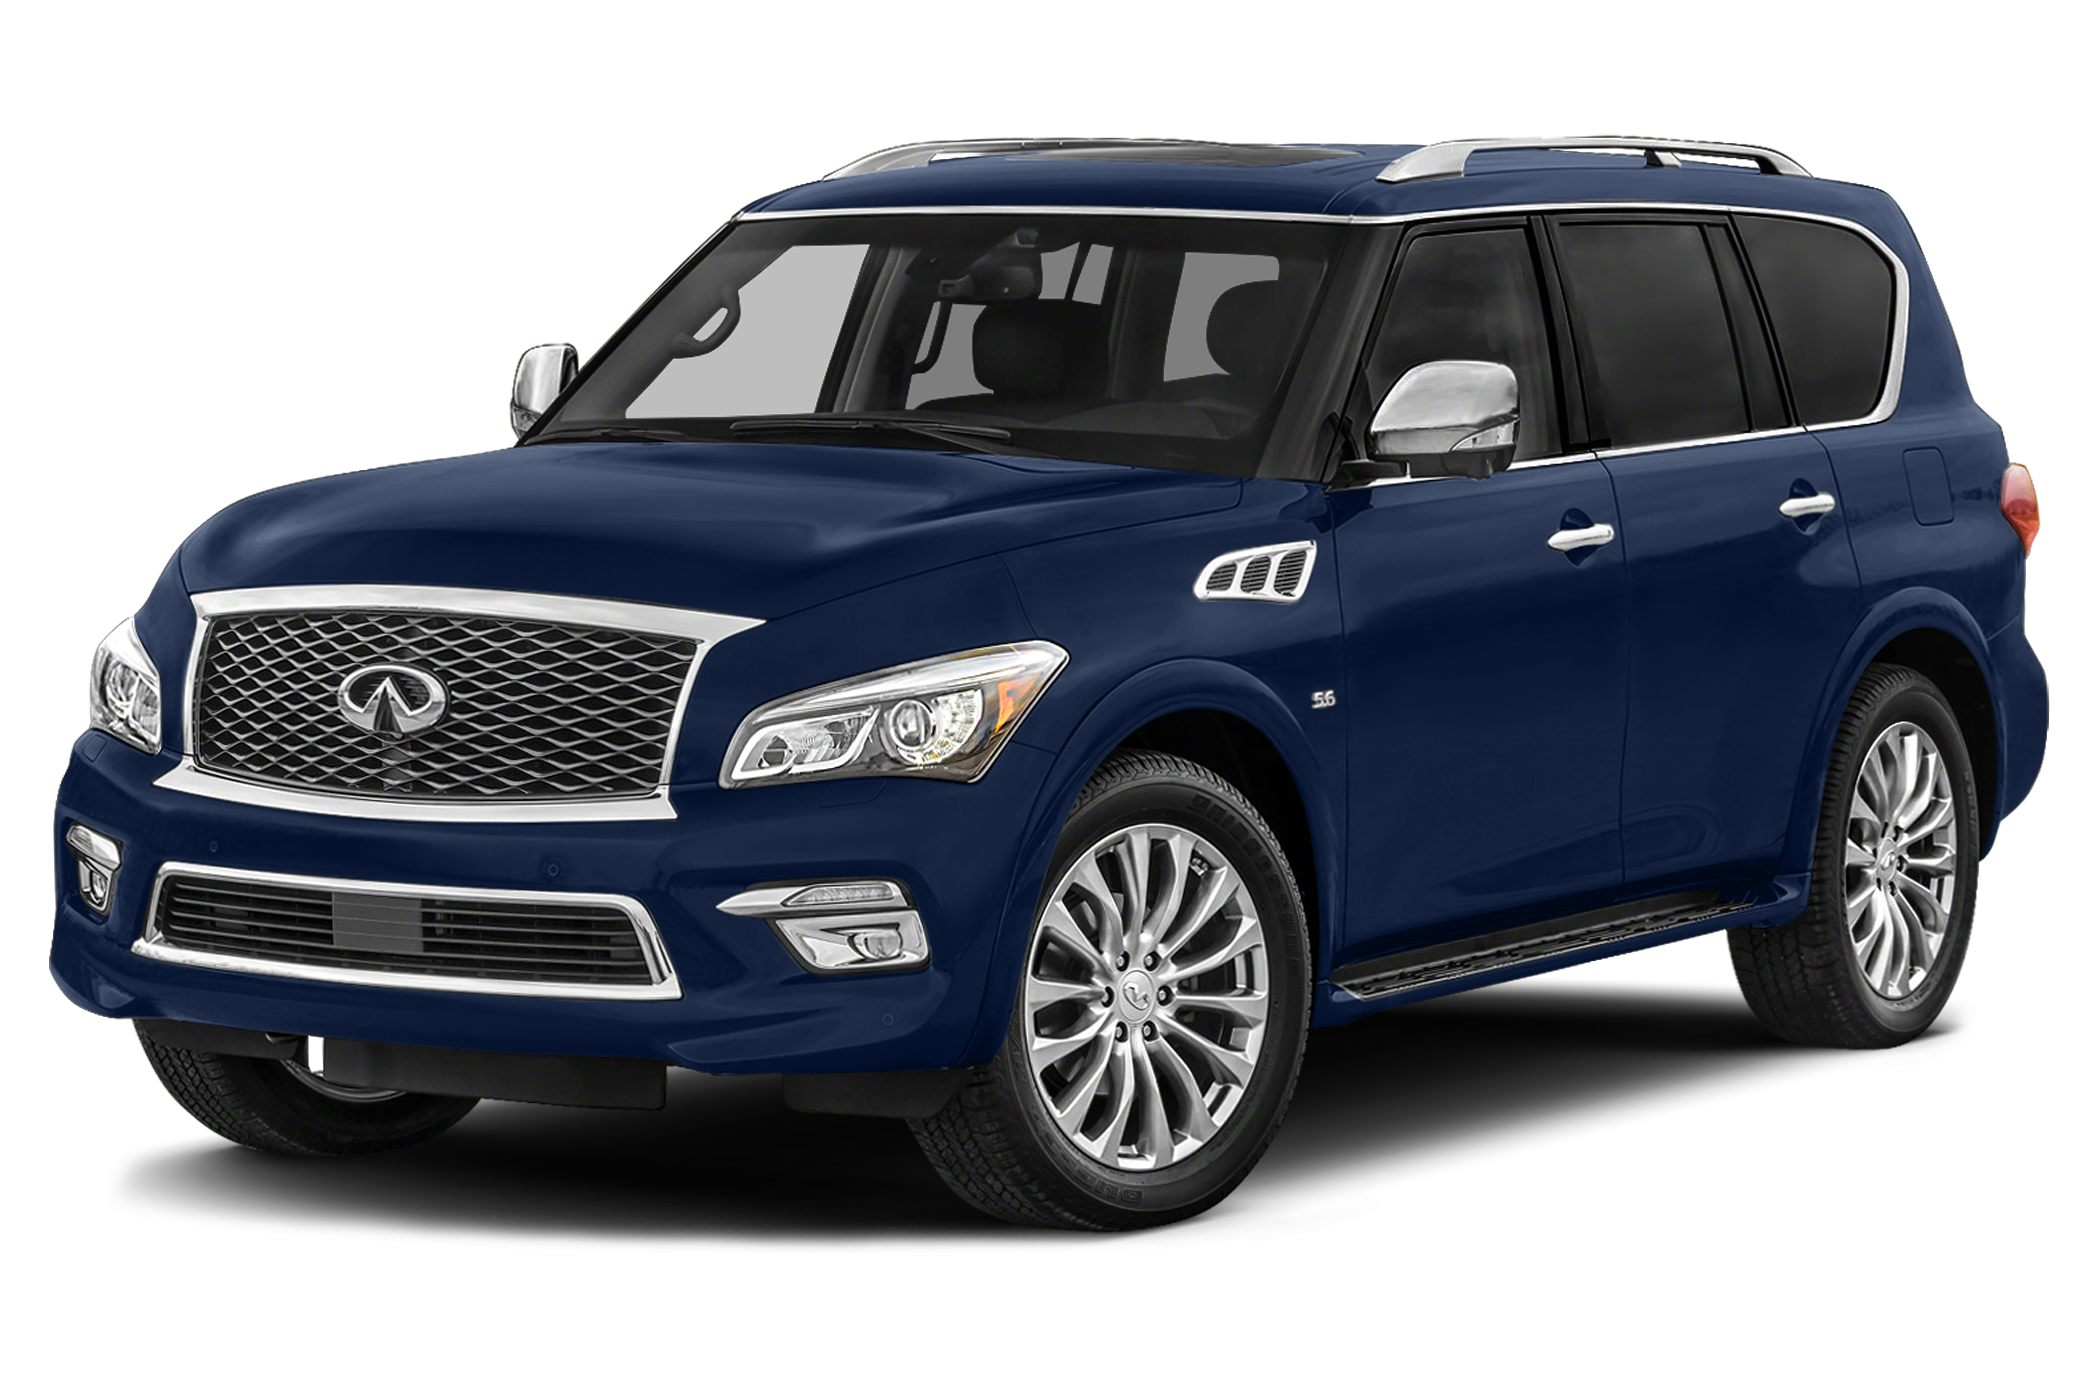 2015 Infiniti QX80 Base SUV for sale in Little Rock for $75,265 with 10 miles